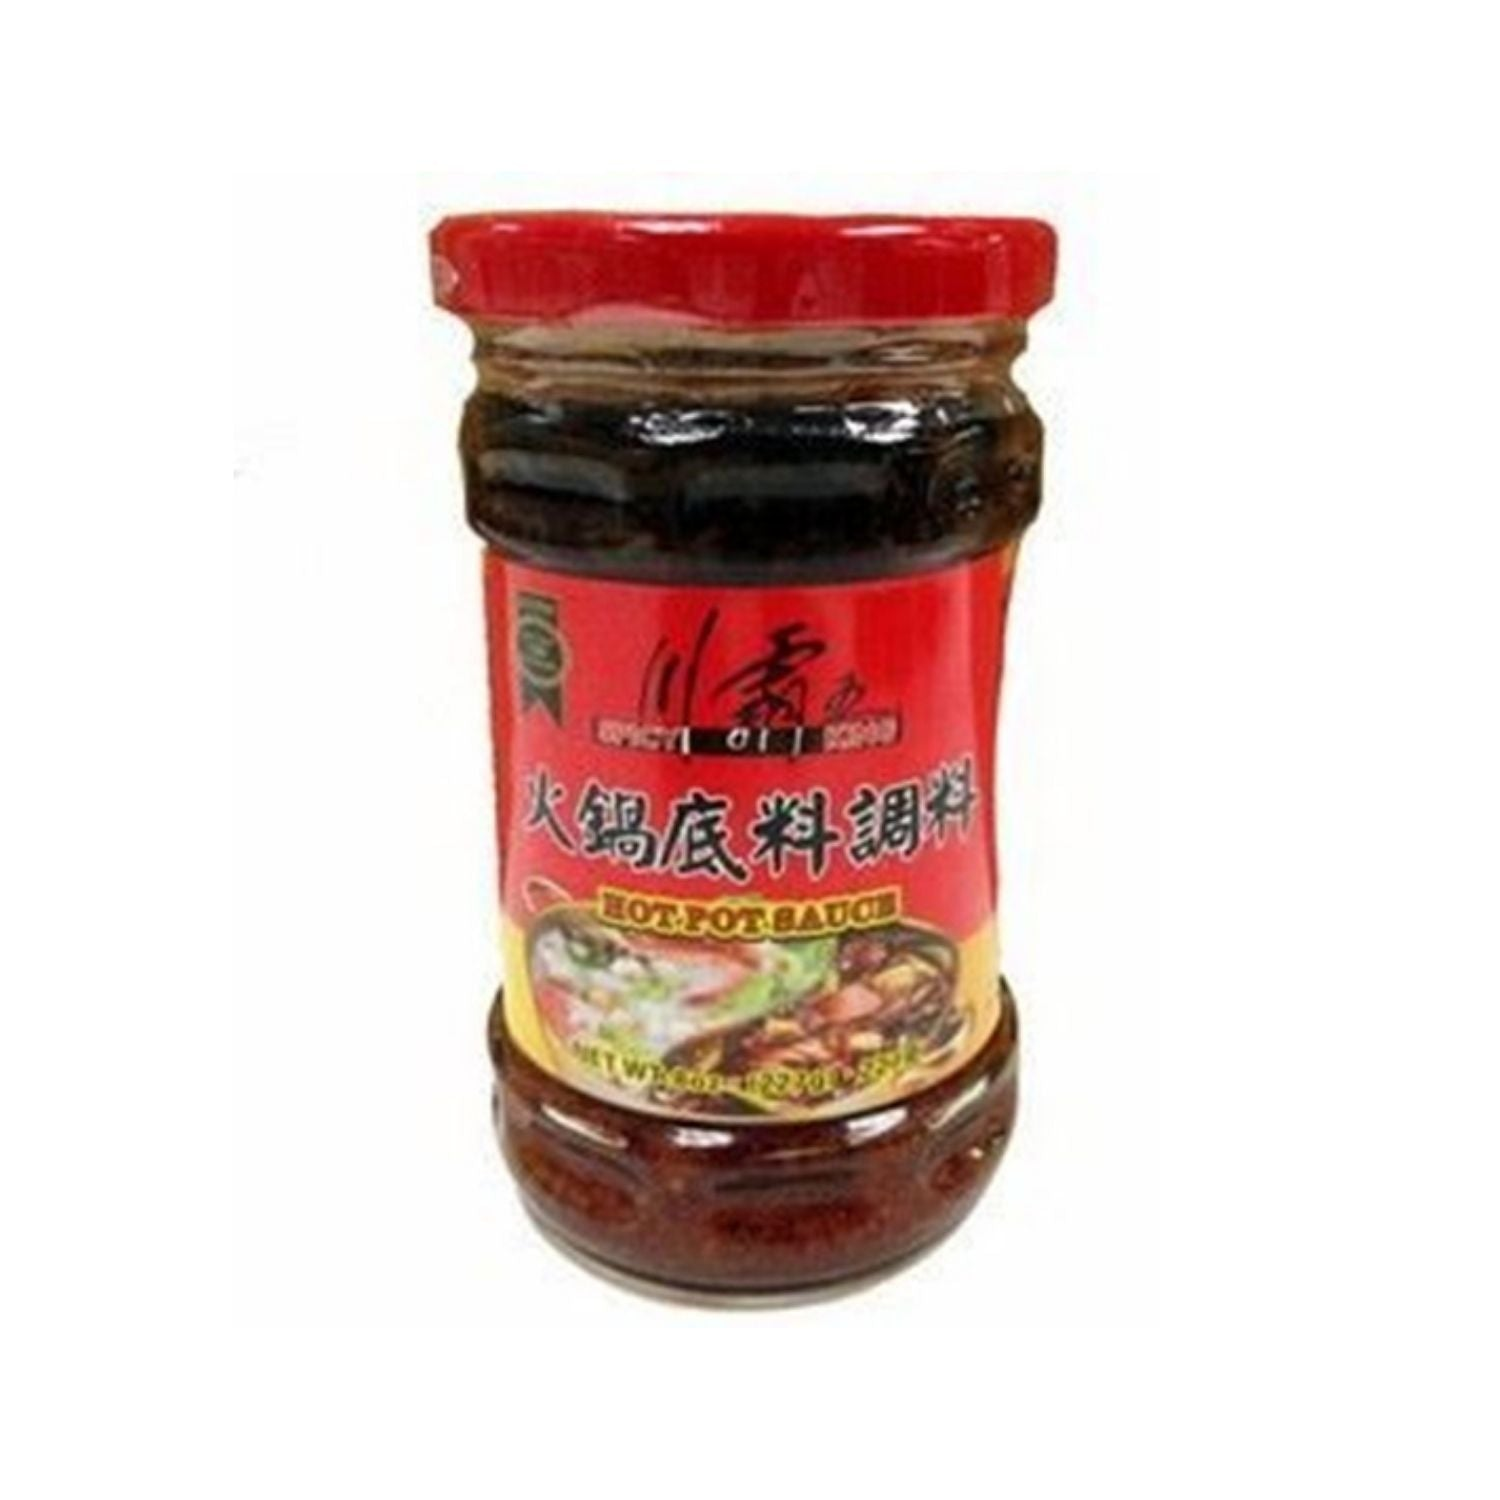 ChuanBa Hot Pot Sauce